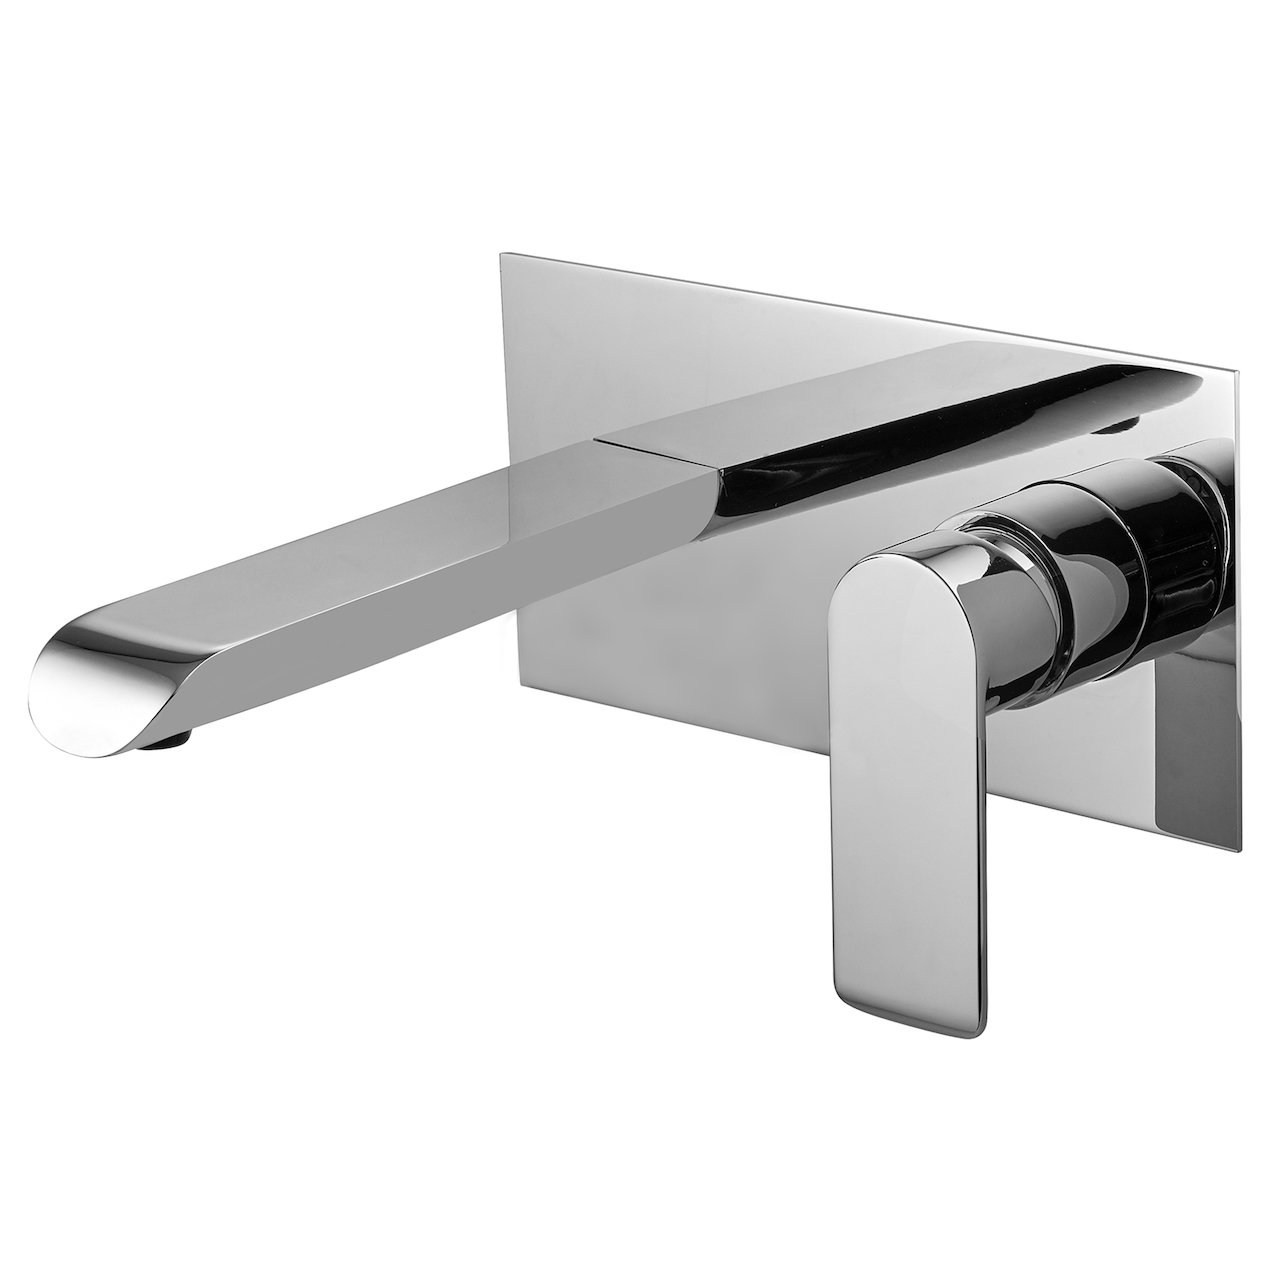 Built-in Washbasin Mixer Magica